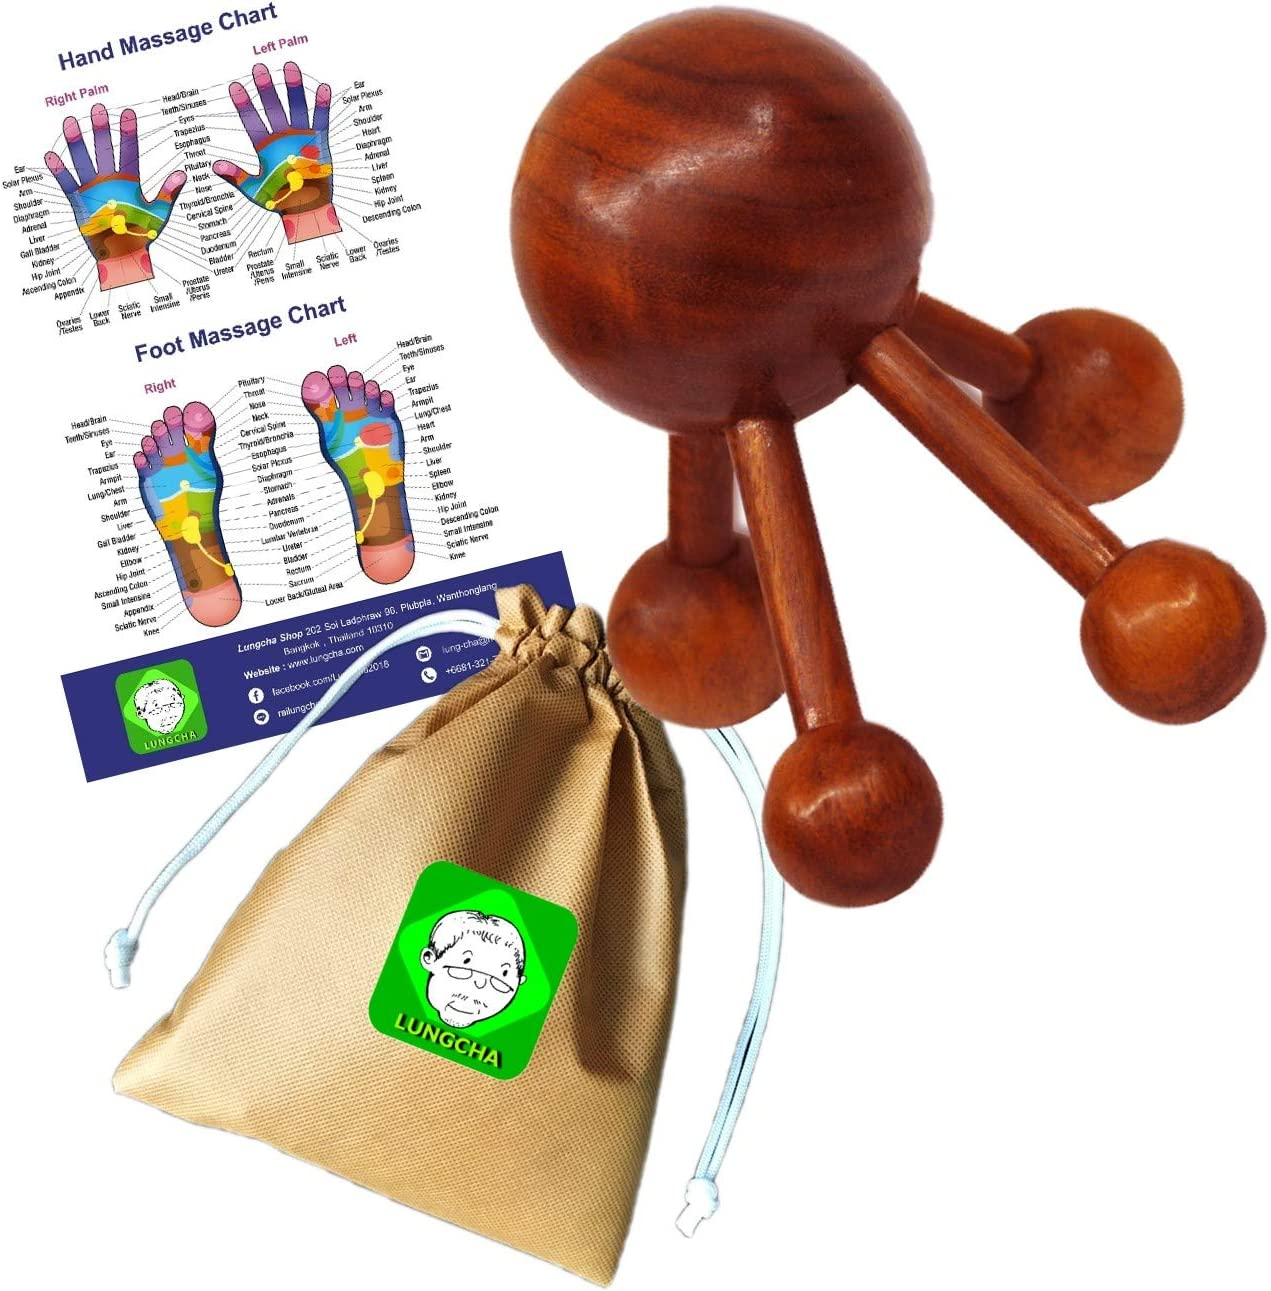 Lungcha Traditional Award Thai Massage 67% OFF of fixed price Reflexology Tool Wooden Stick